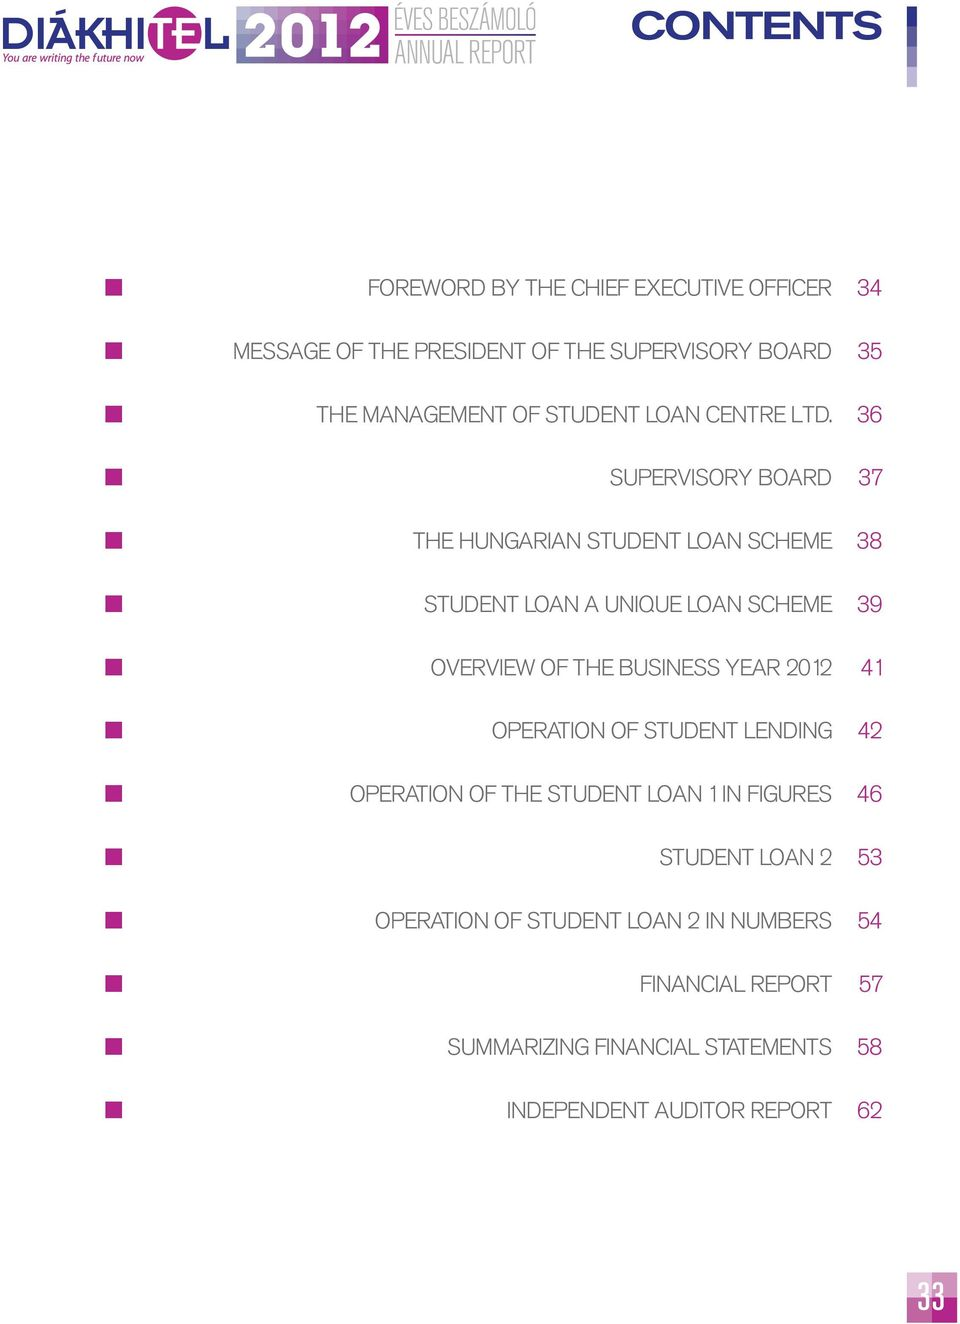 36 SUPERVISORY BOARD 37 THE HUNGARIAN STUDENT LOAN SCHEME 38 STUDENT LOAN A UNIQUE LOAN SCHEME 39 OVERVIEW OF THE BUSINESS YEAR 2012